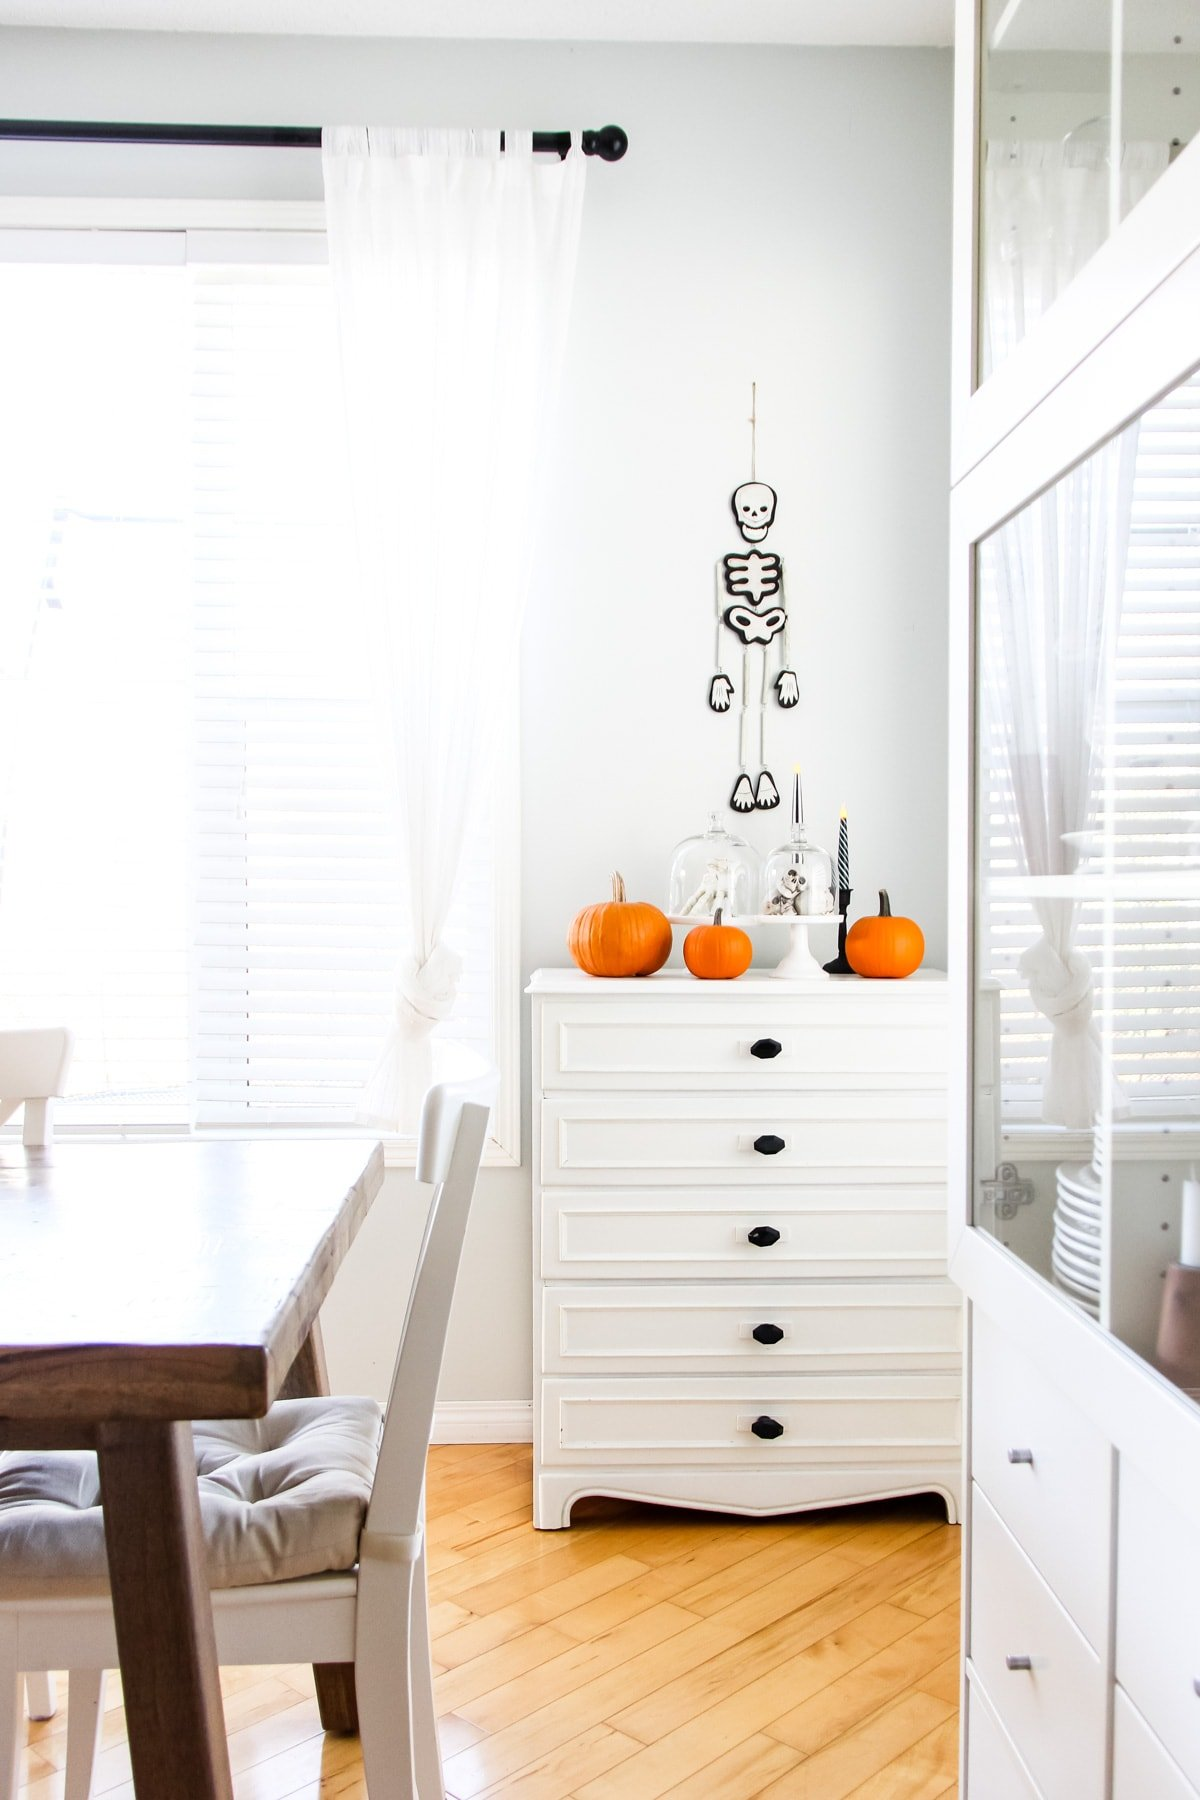 a white dresser decorated with Halloween pumpkins, candles and cloches filled with skulls and skeleton hands